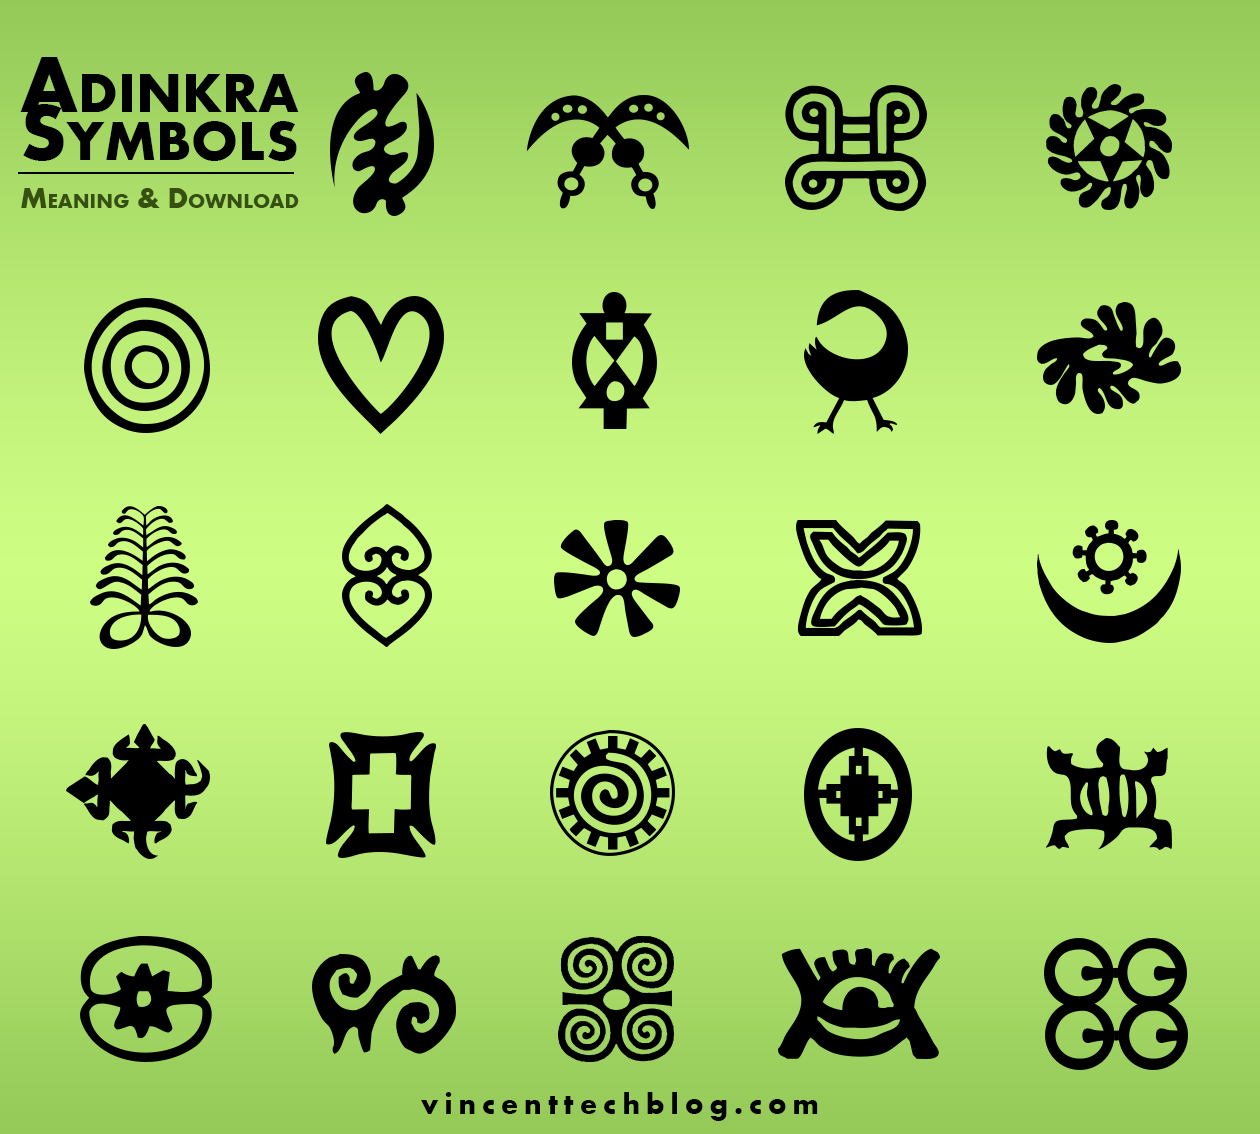 Adinkra symbols free download ghanaian symbols brushes shapes adinkra symbols biocorpaavc